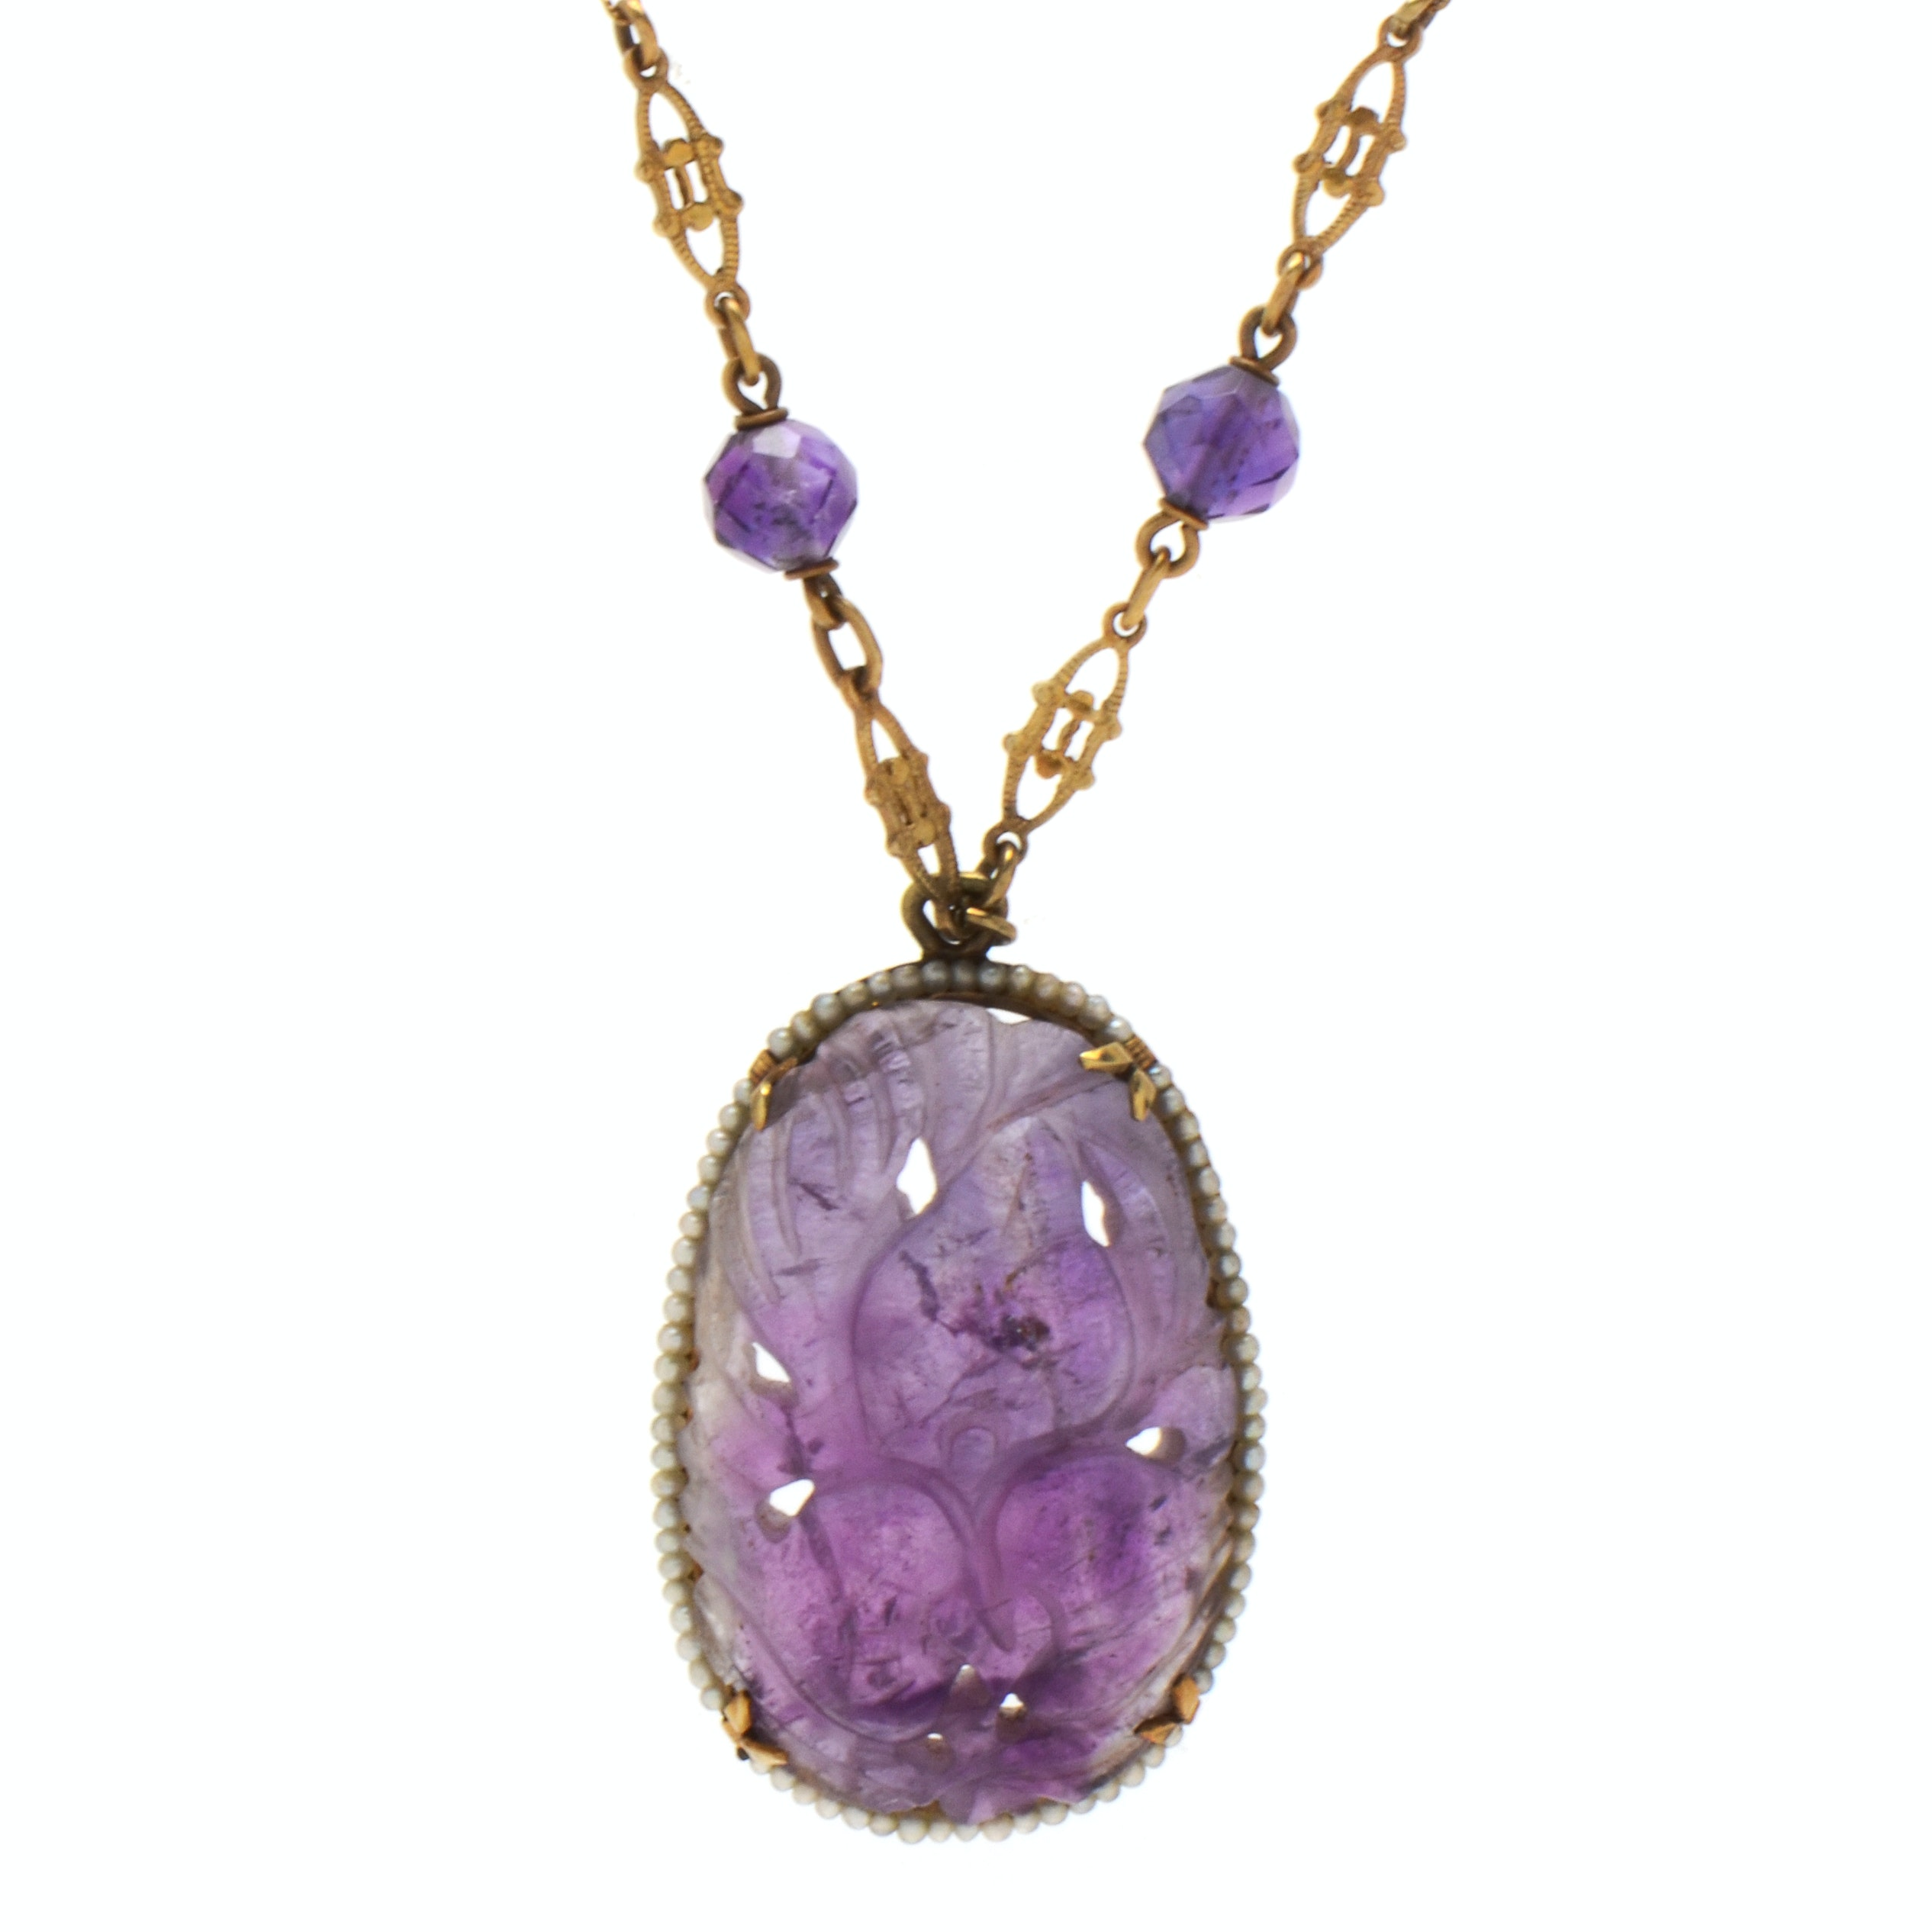 14K Yellow Gold Amethyst and Seed Pearl Pendant Necklace